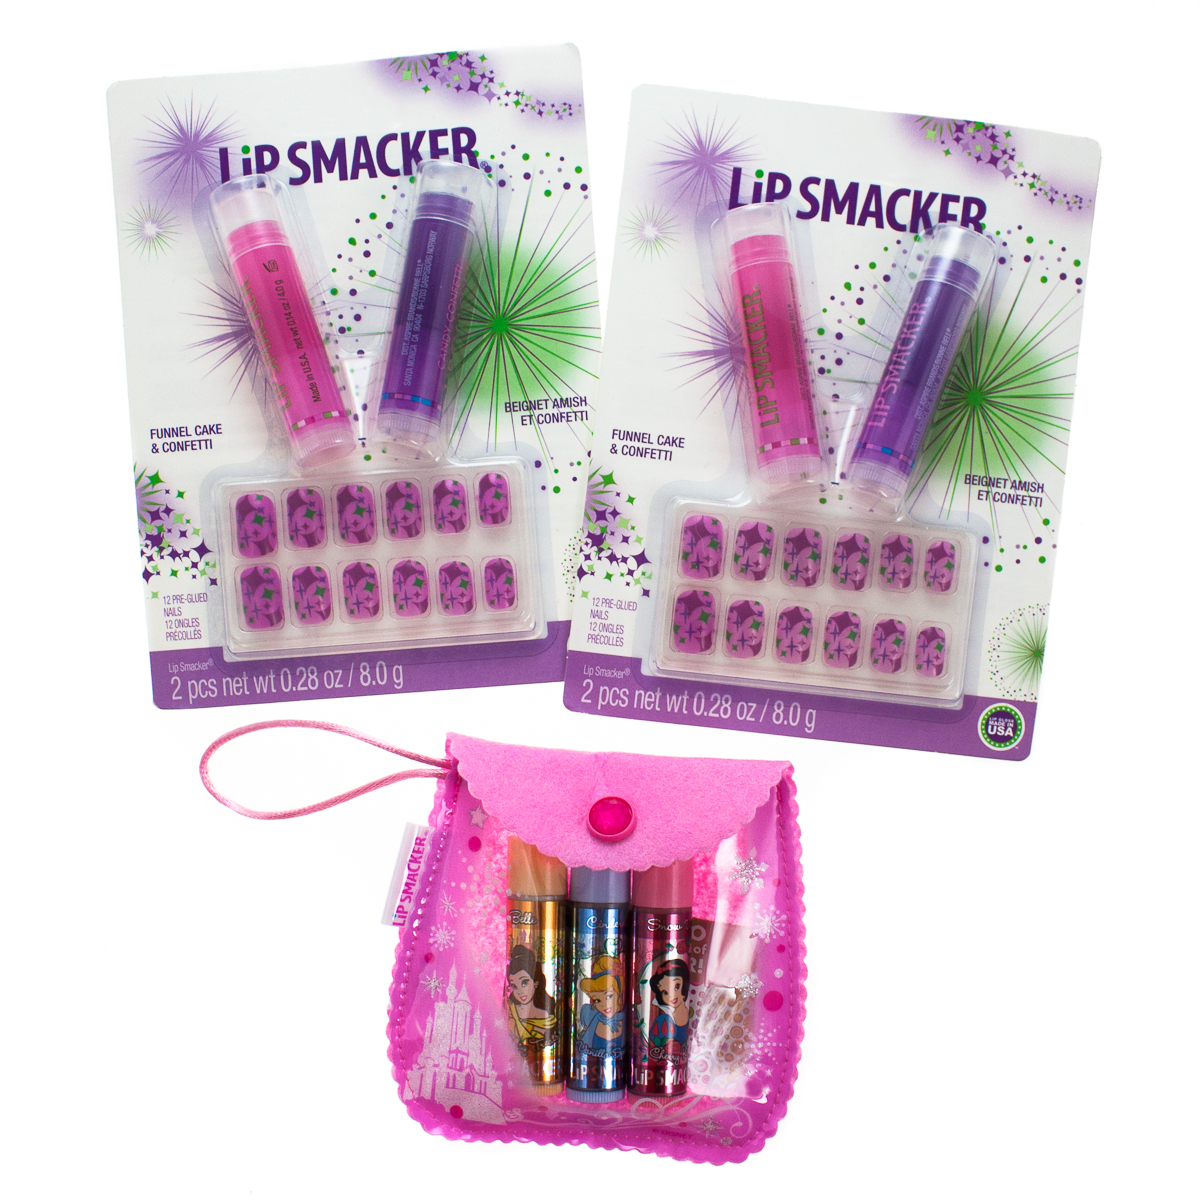 3 Sets Lip Smacker Flavored Balm Pre-Glued Finger Nails Disney Princess + Pouch